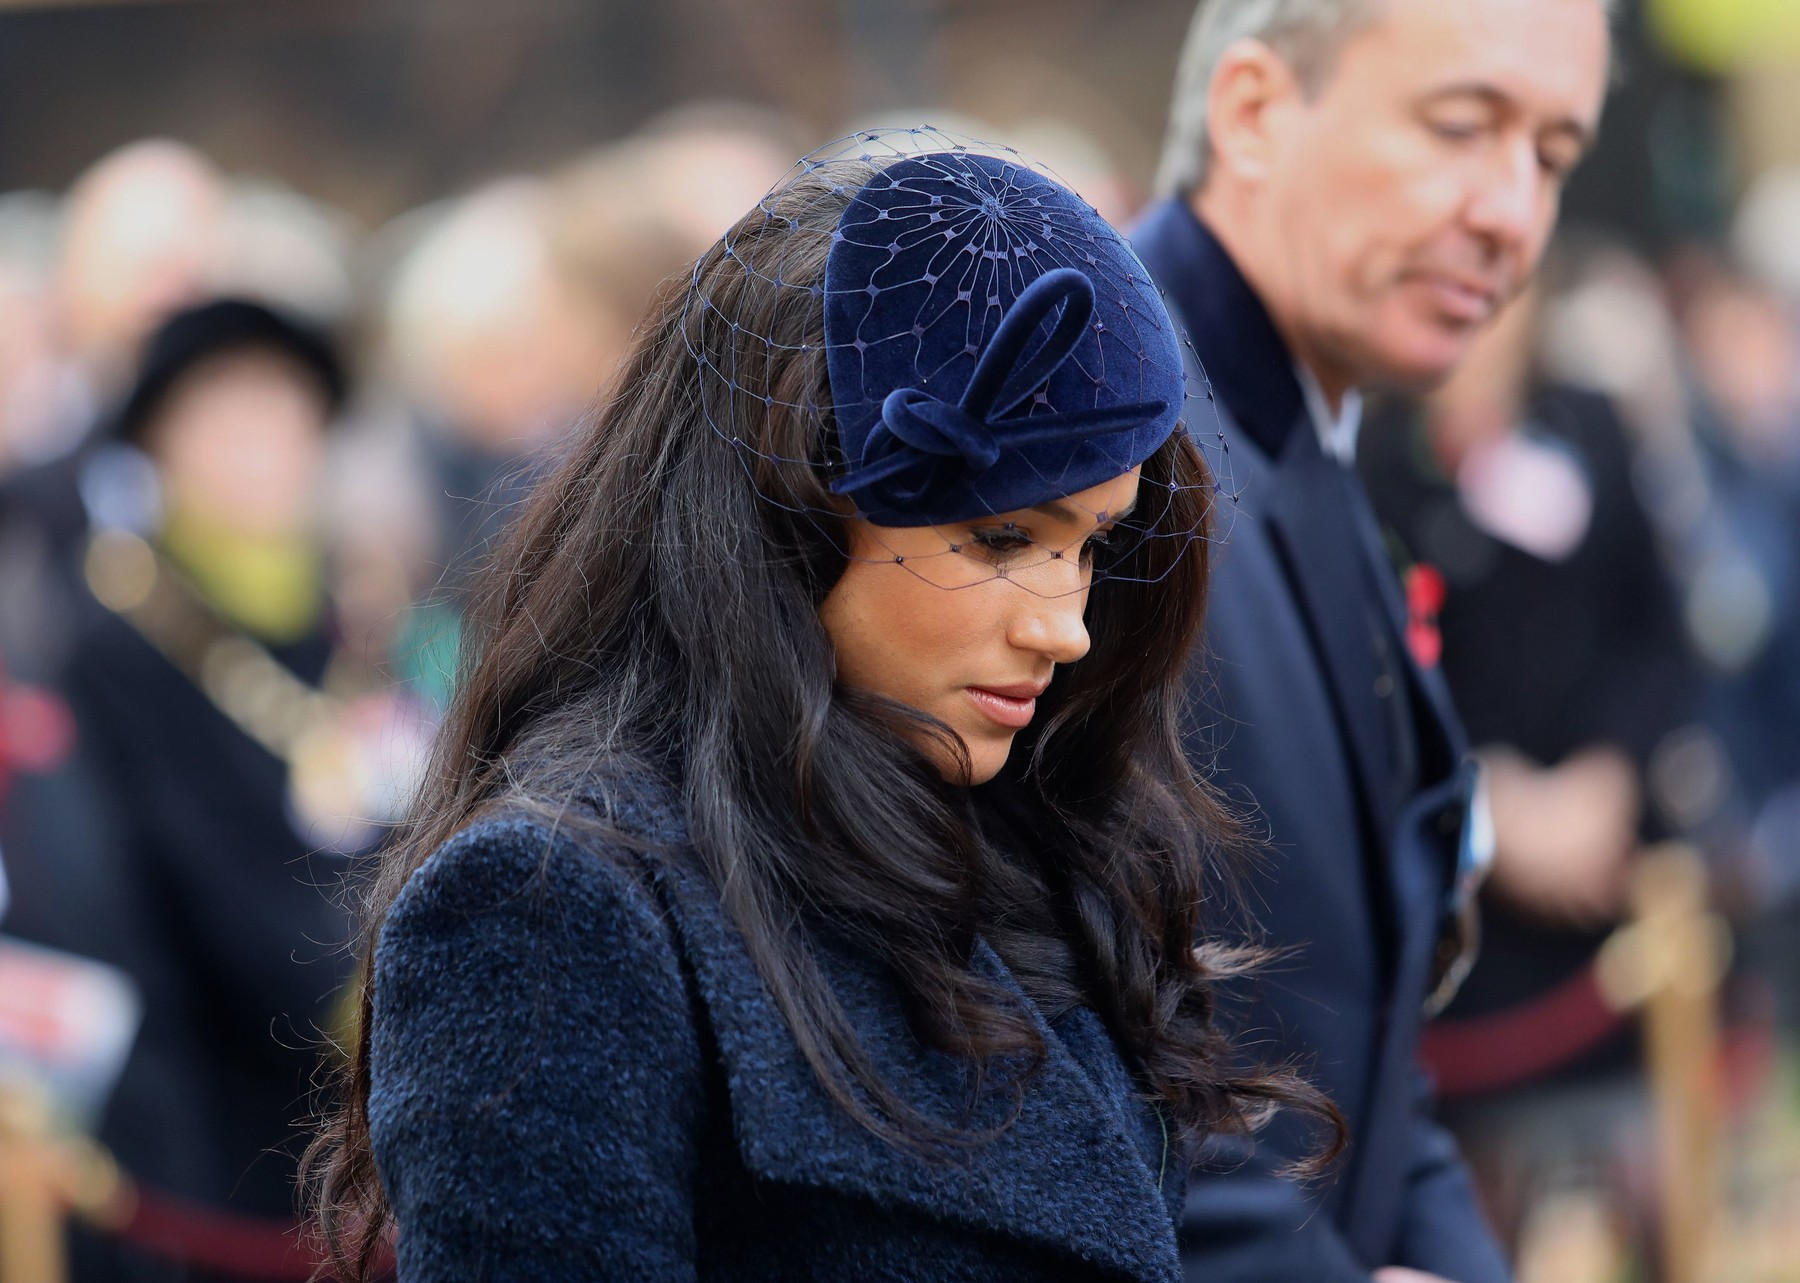 Meghan Duchess of Sussex attends the opening of the 91st 'The Field of Remembrance' Westminster Abbey Field of Remembrance opening, London, UK - 07 Nov 2019,Image: 481678008, License: Rights-managed, Restrictions: , Model Release: no